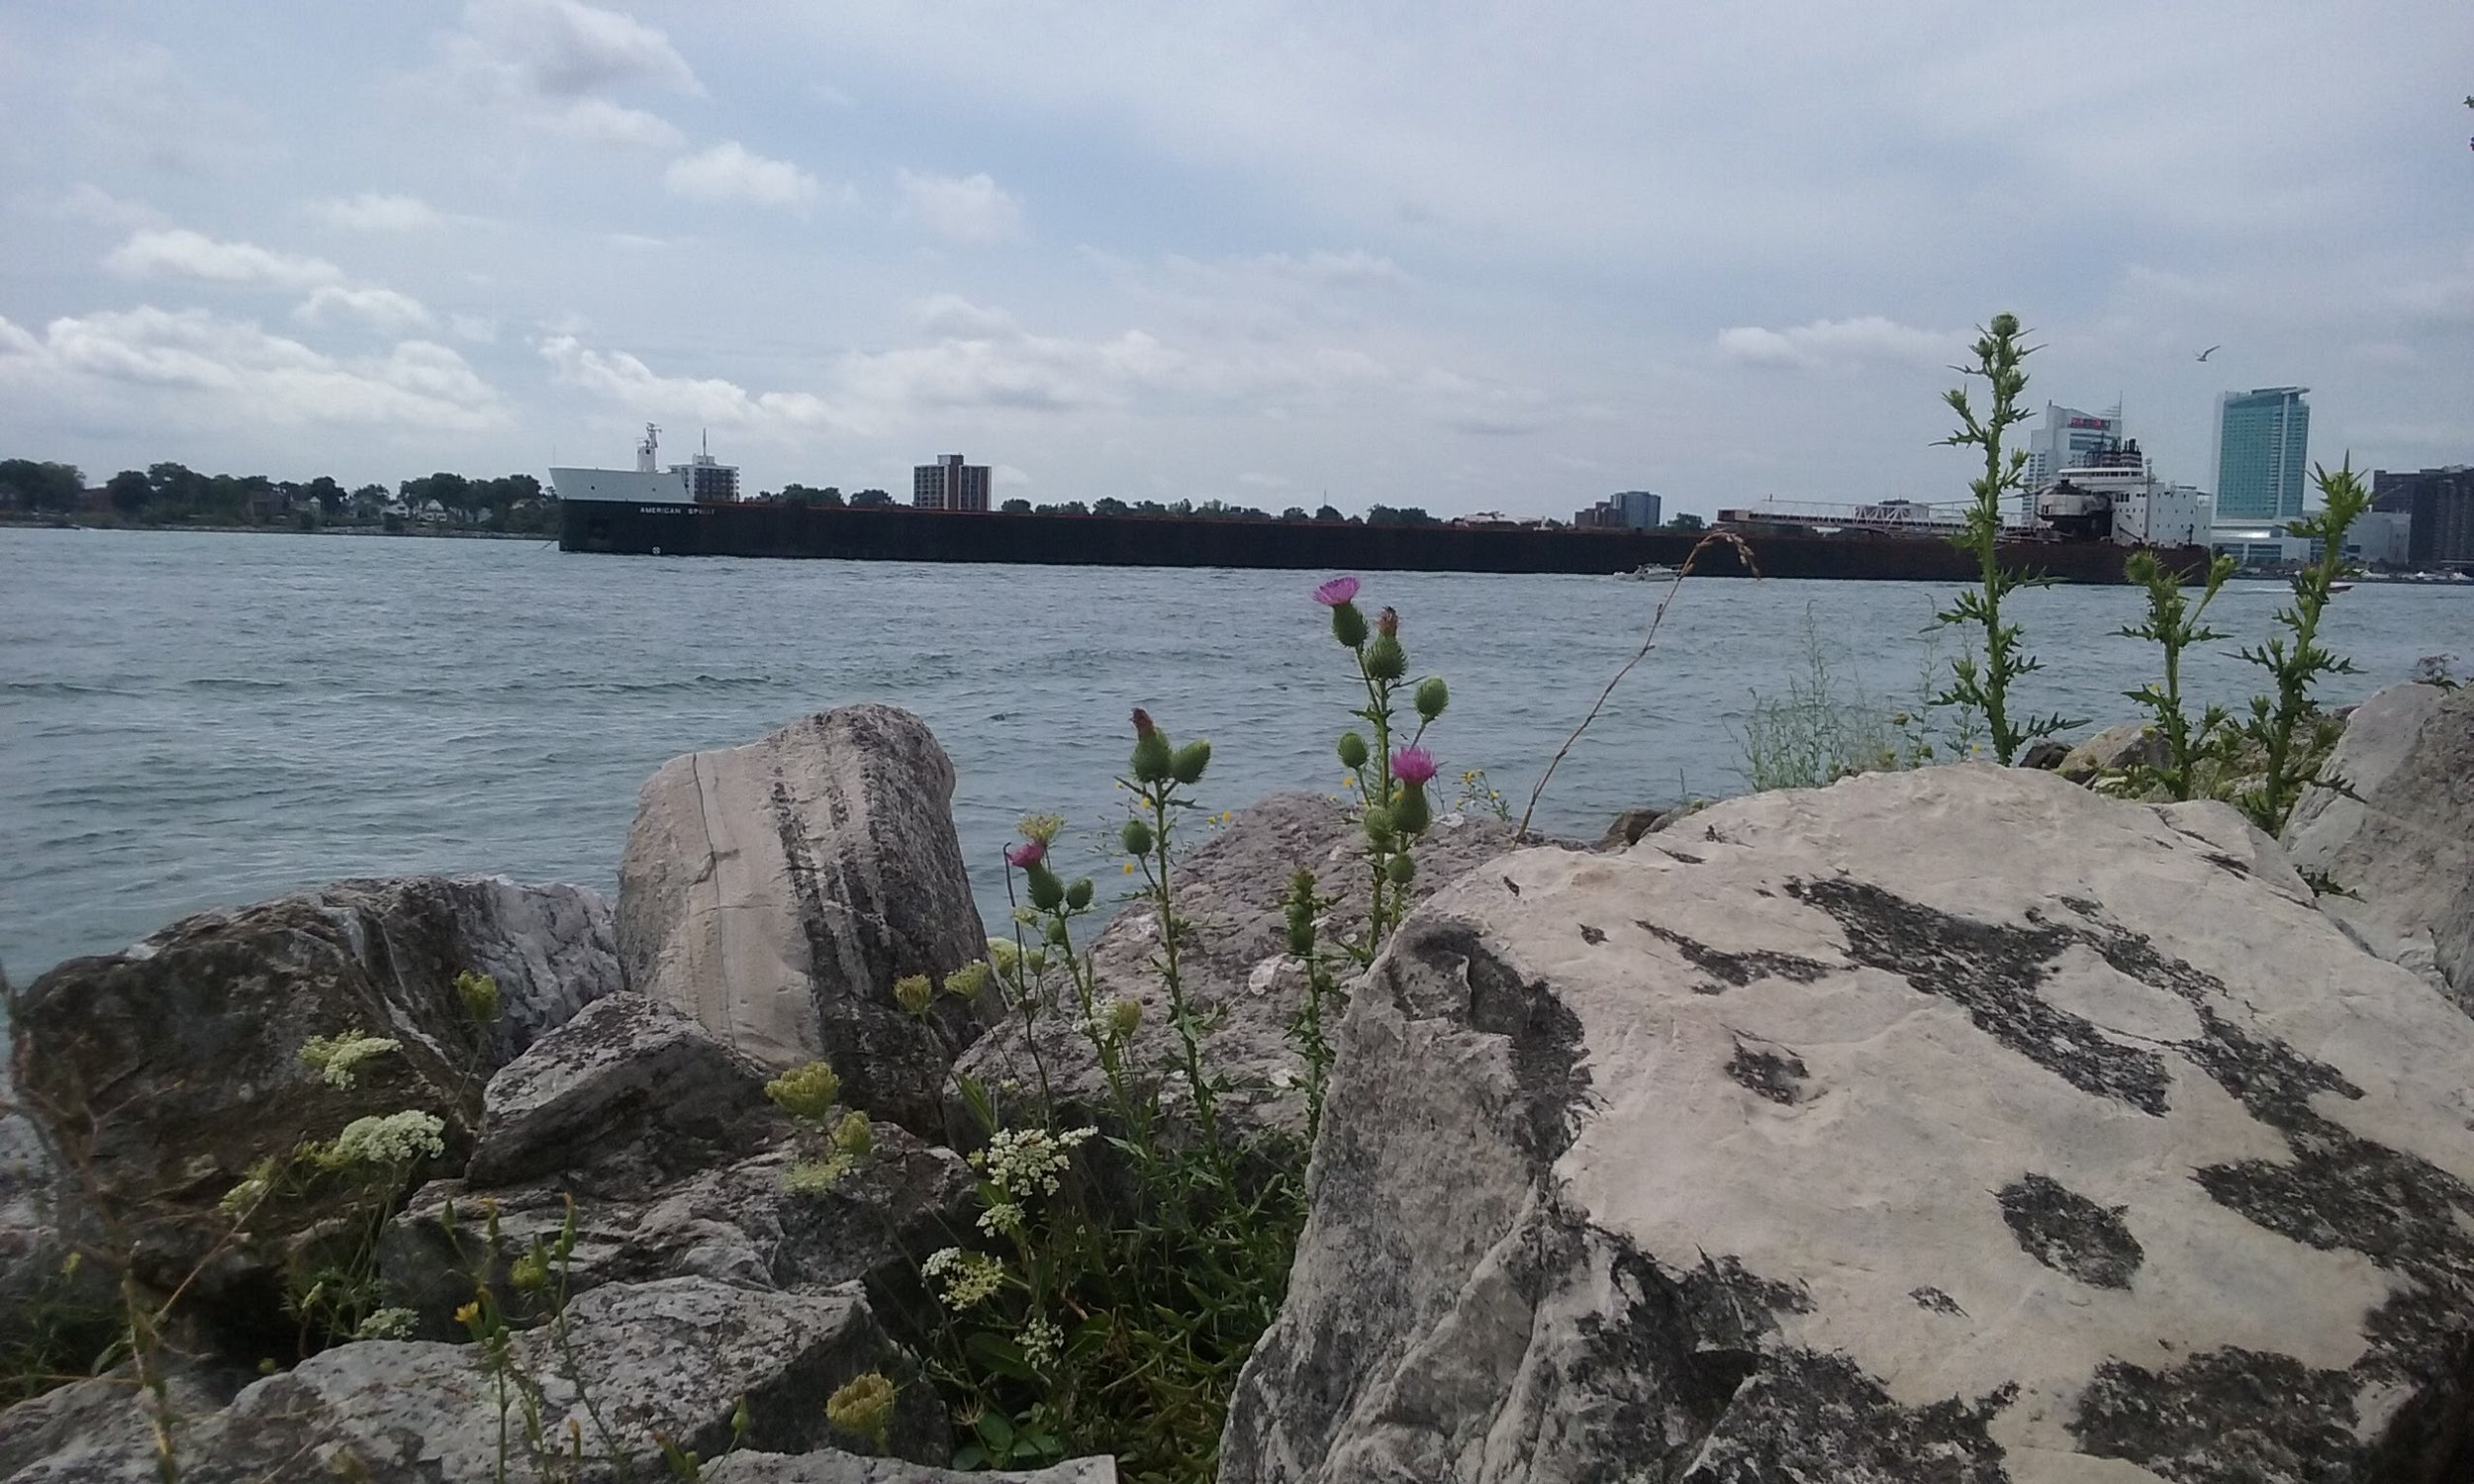 Freighter on Detroit River